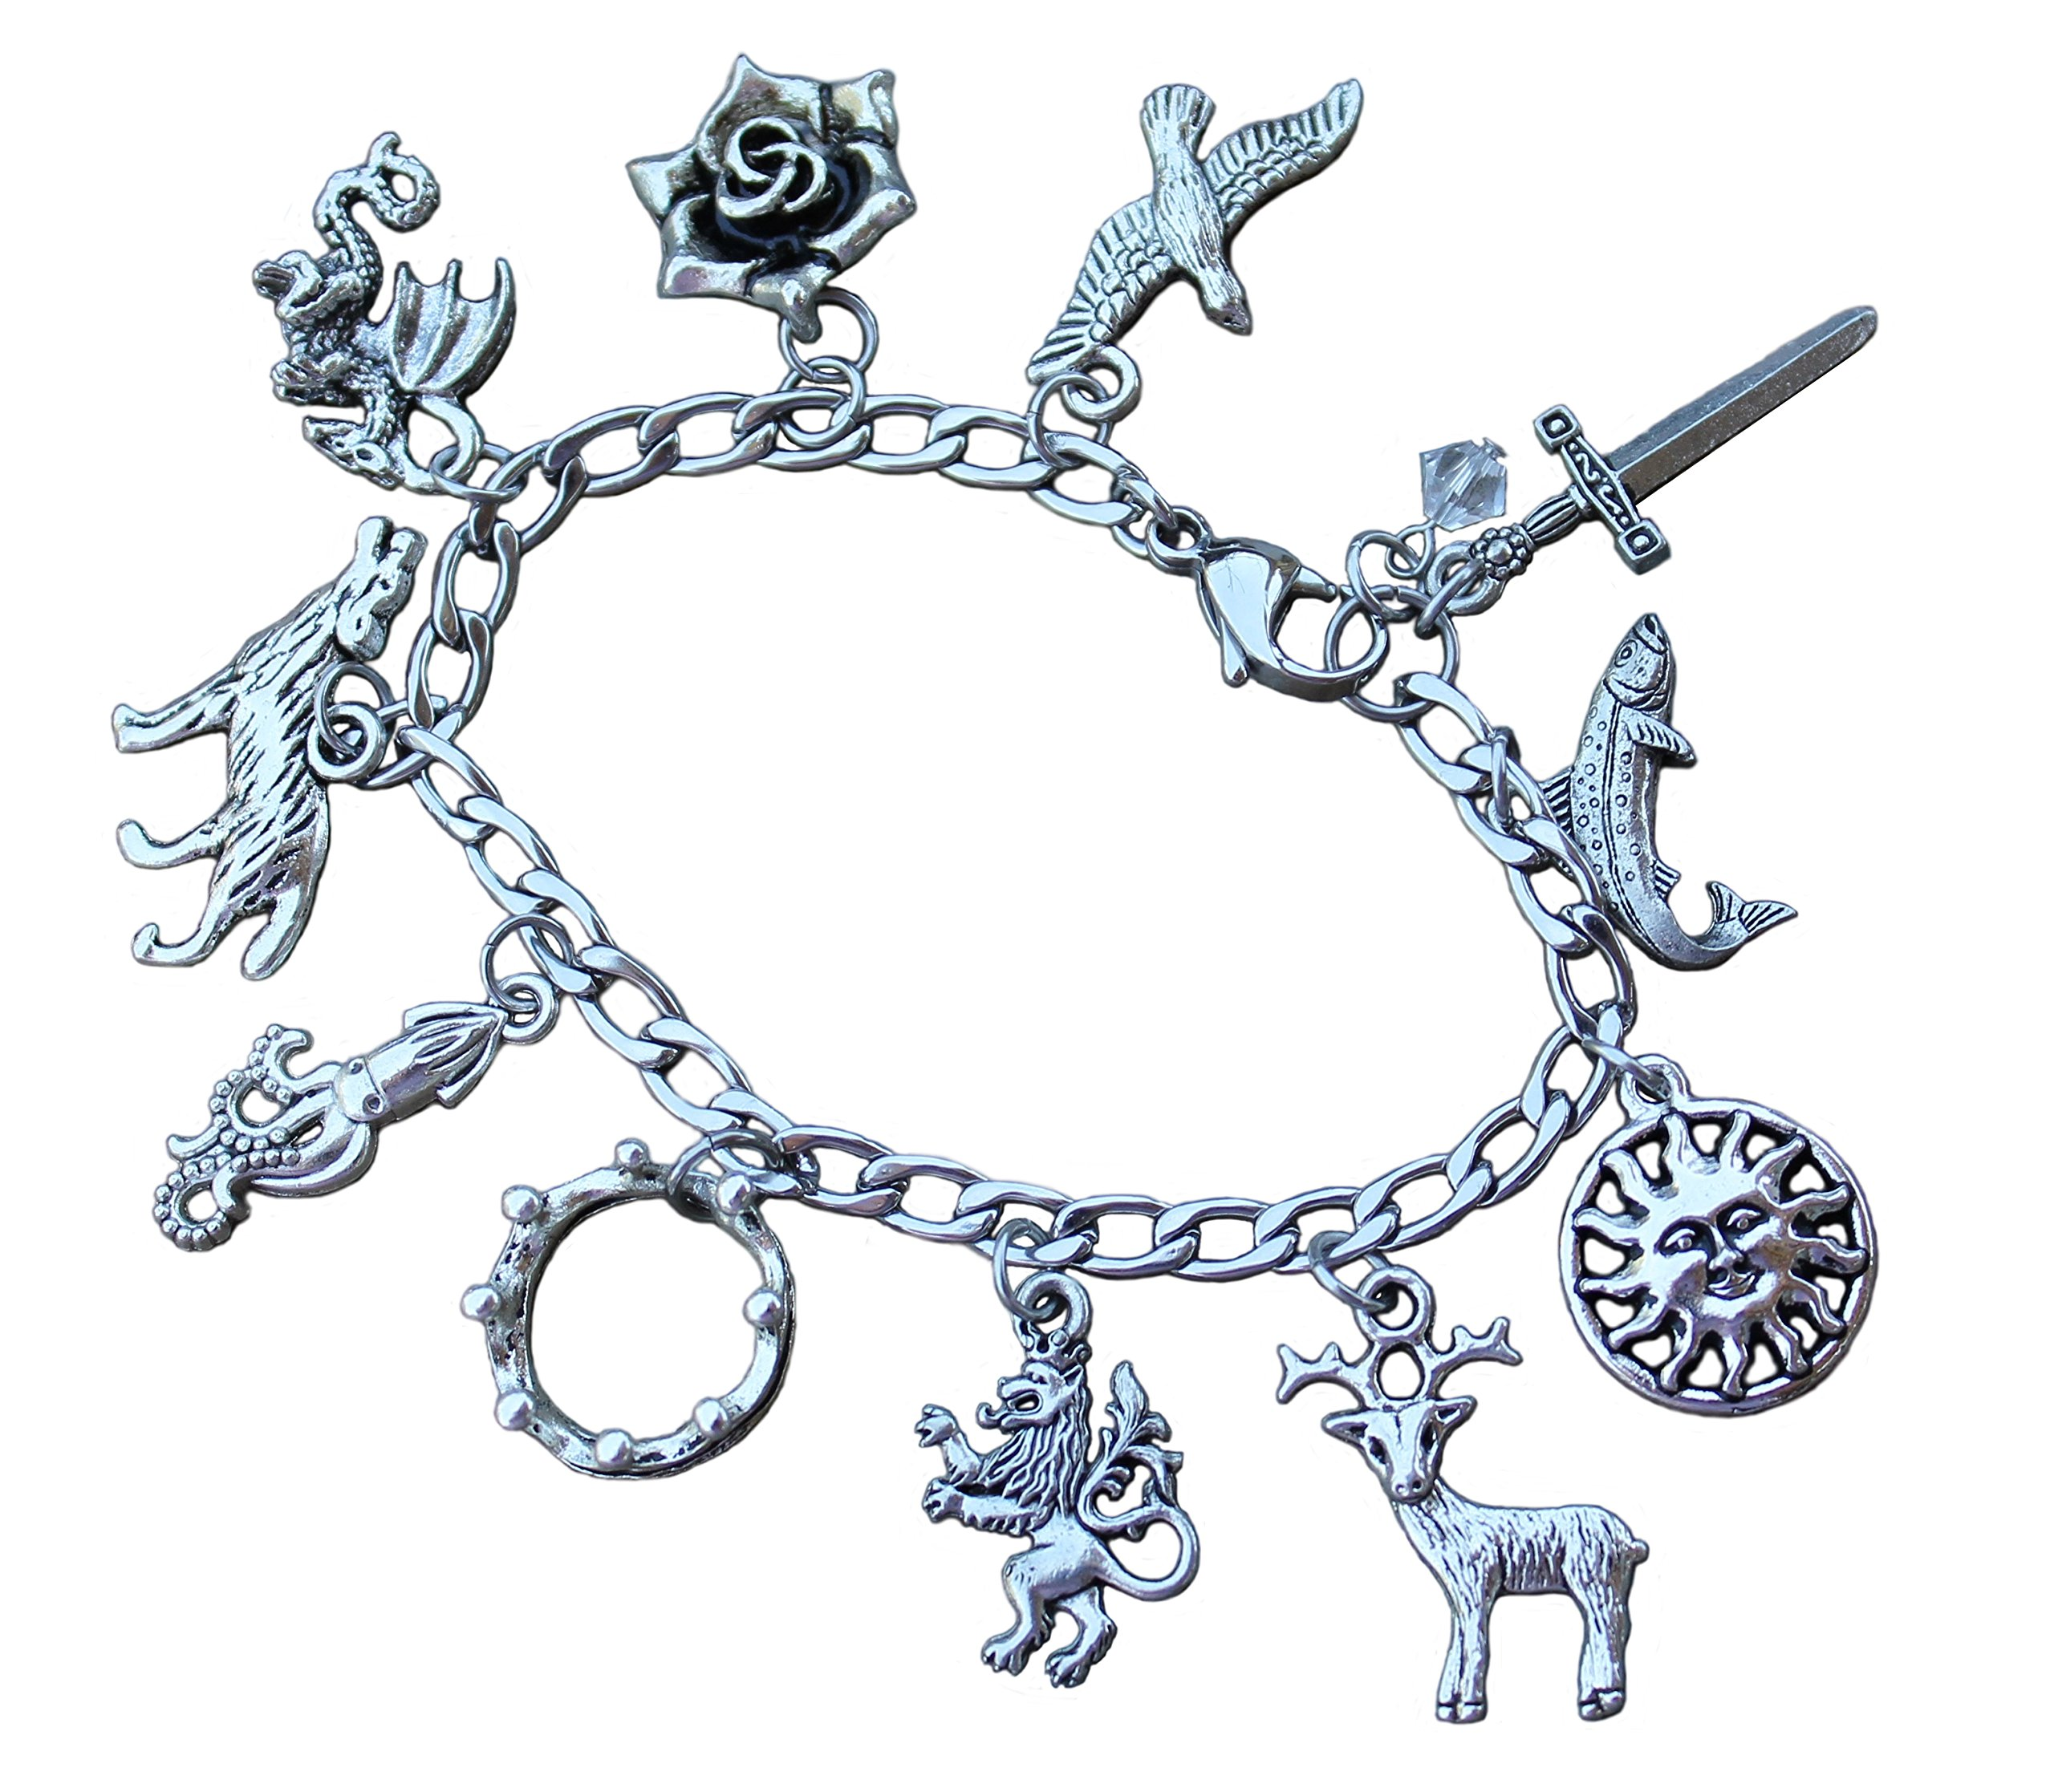 Game of Thrones Charm Bracelet Stainless Steel Chain, Pewter Charms- Fantasy Fan Jewelry - Size M (7.5 Inches (Medium))